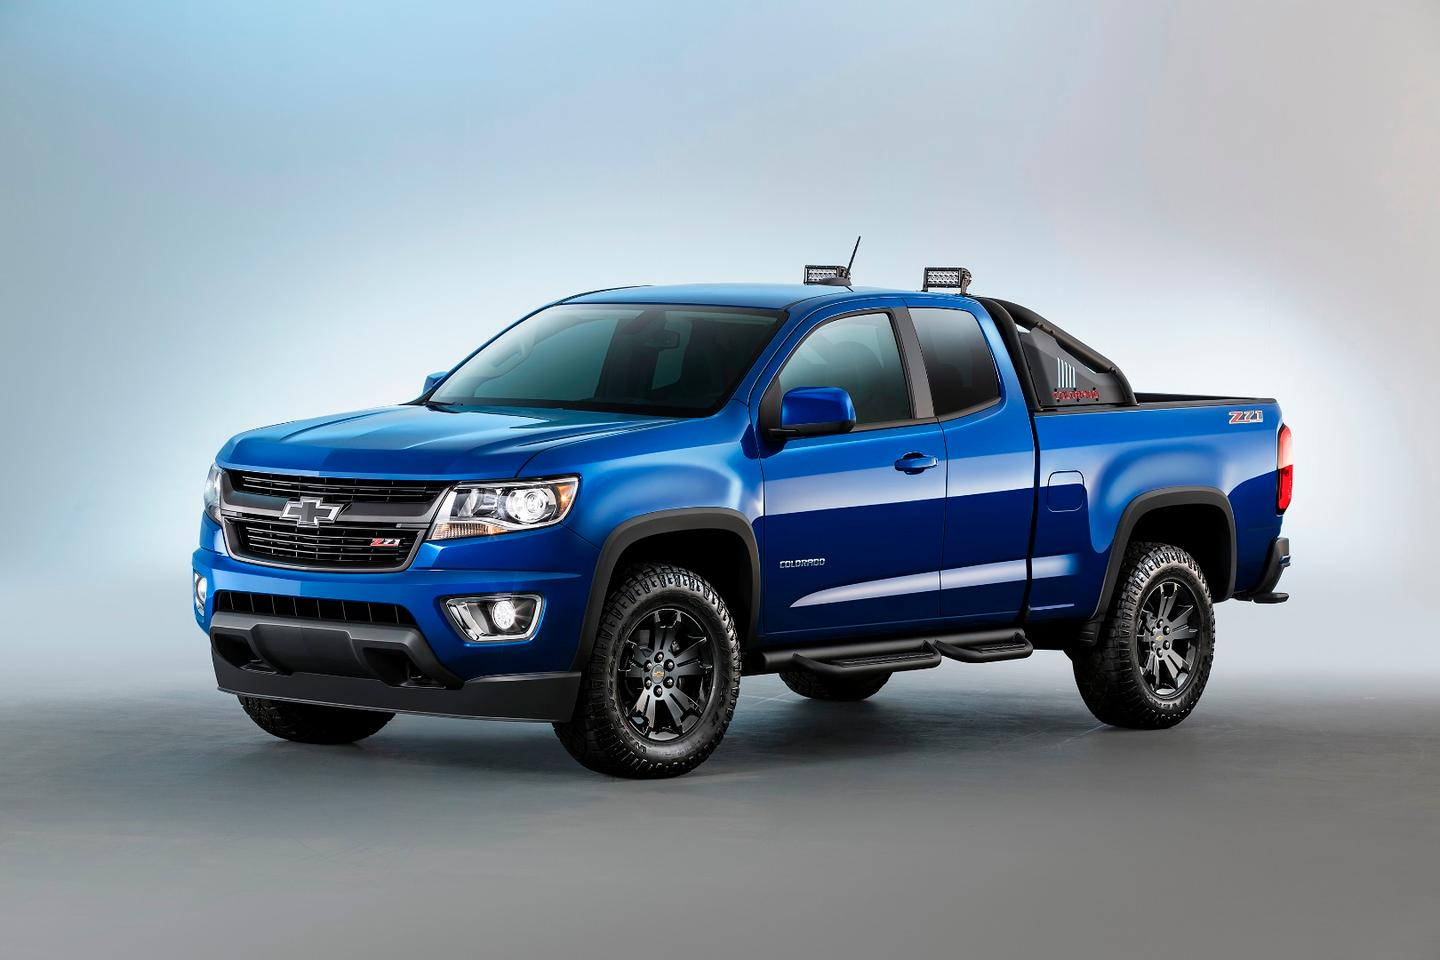 The Colorado has been fitted with an eight-speed gearbox